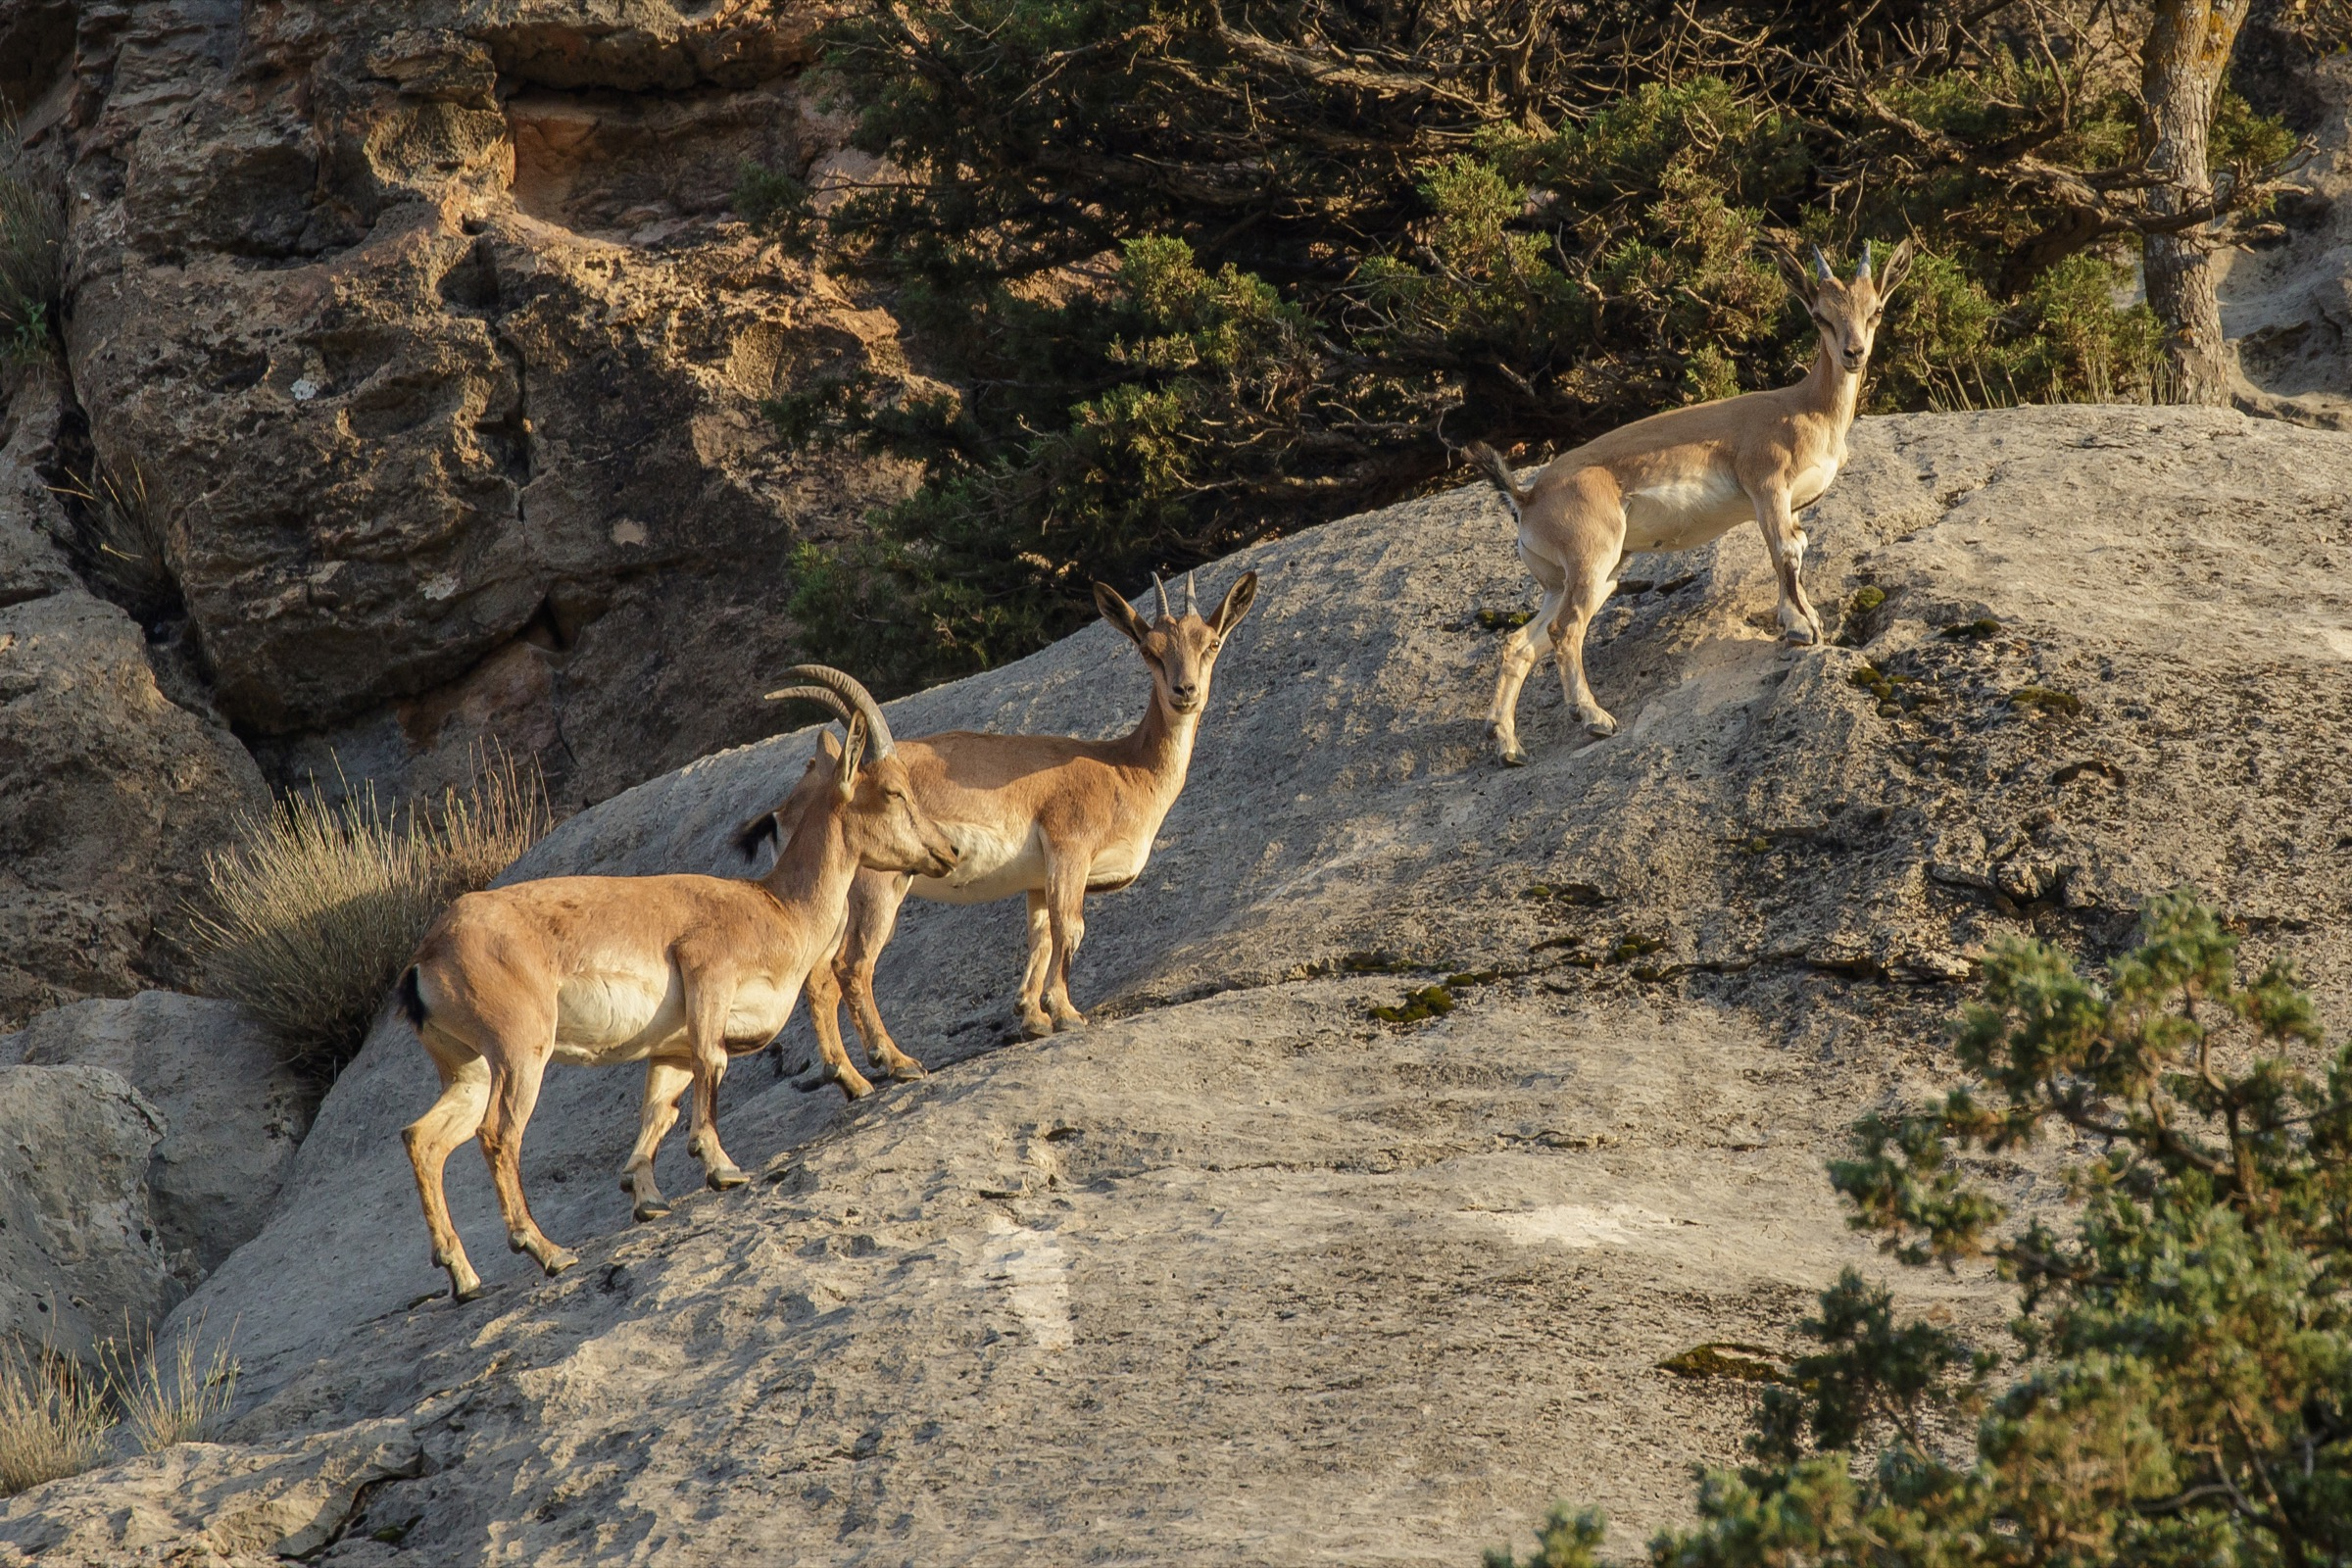 A female wild goat (<em>Capra aegagrus</em>) and her two offspring climb a steep, rocky slope in Iran's Golestan National Park. Photograph by Behzad Farahanchi